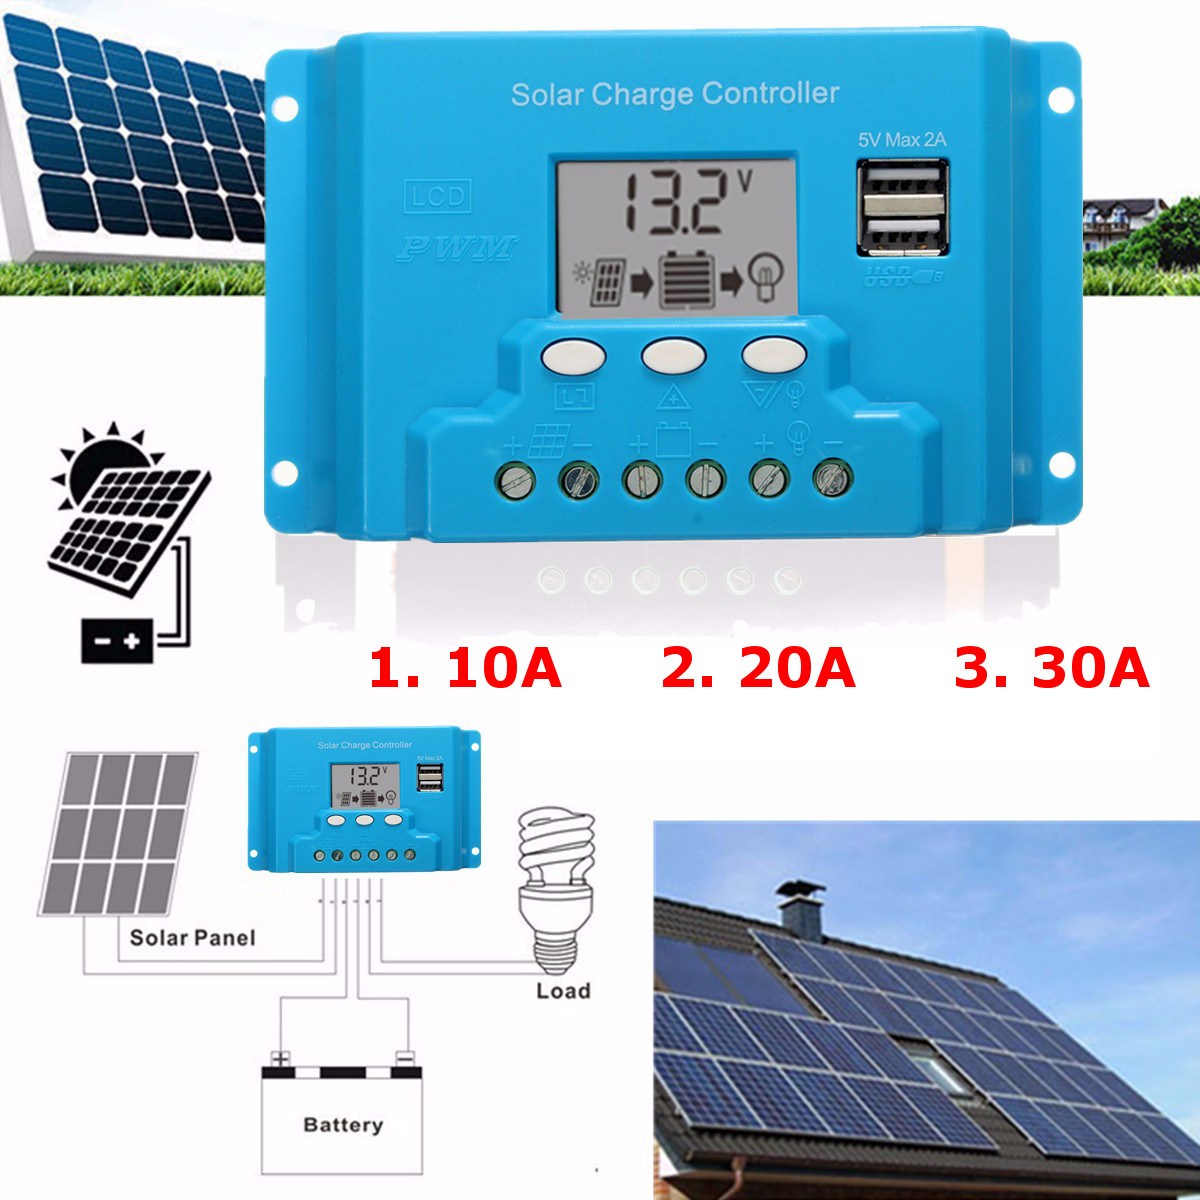 10a 20a 30a Lcd Pwm Solar Panel Charge Controller Battery Regulator Panels To Batteries Via D148f0fe E7da A124 4360 10ad544eafdc